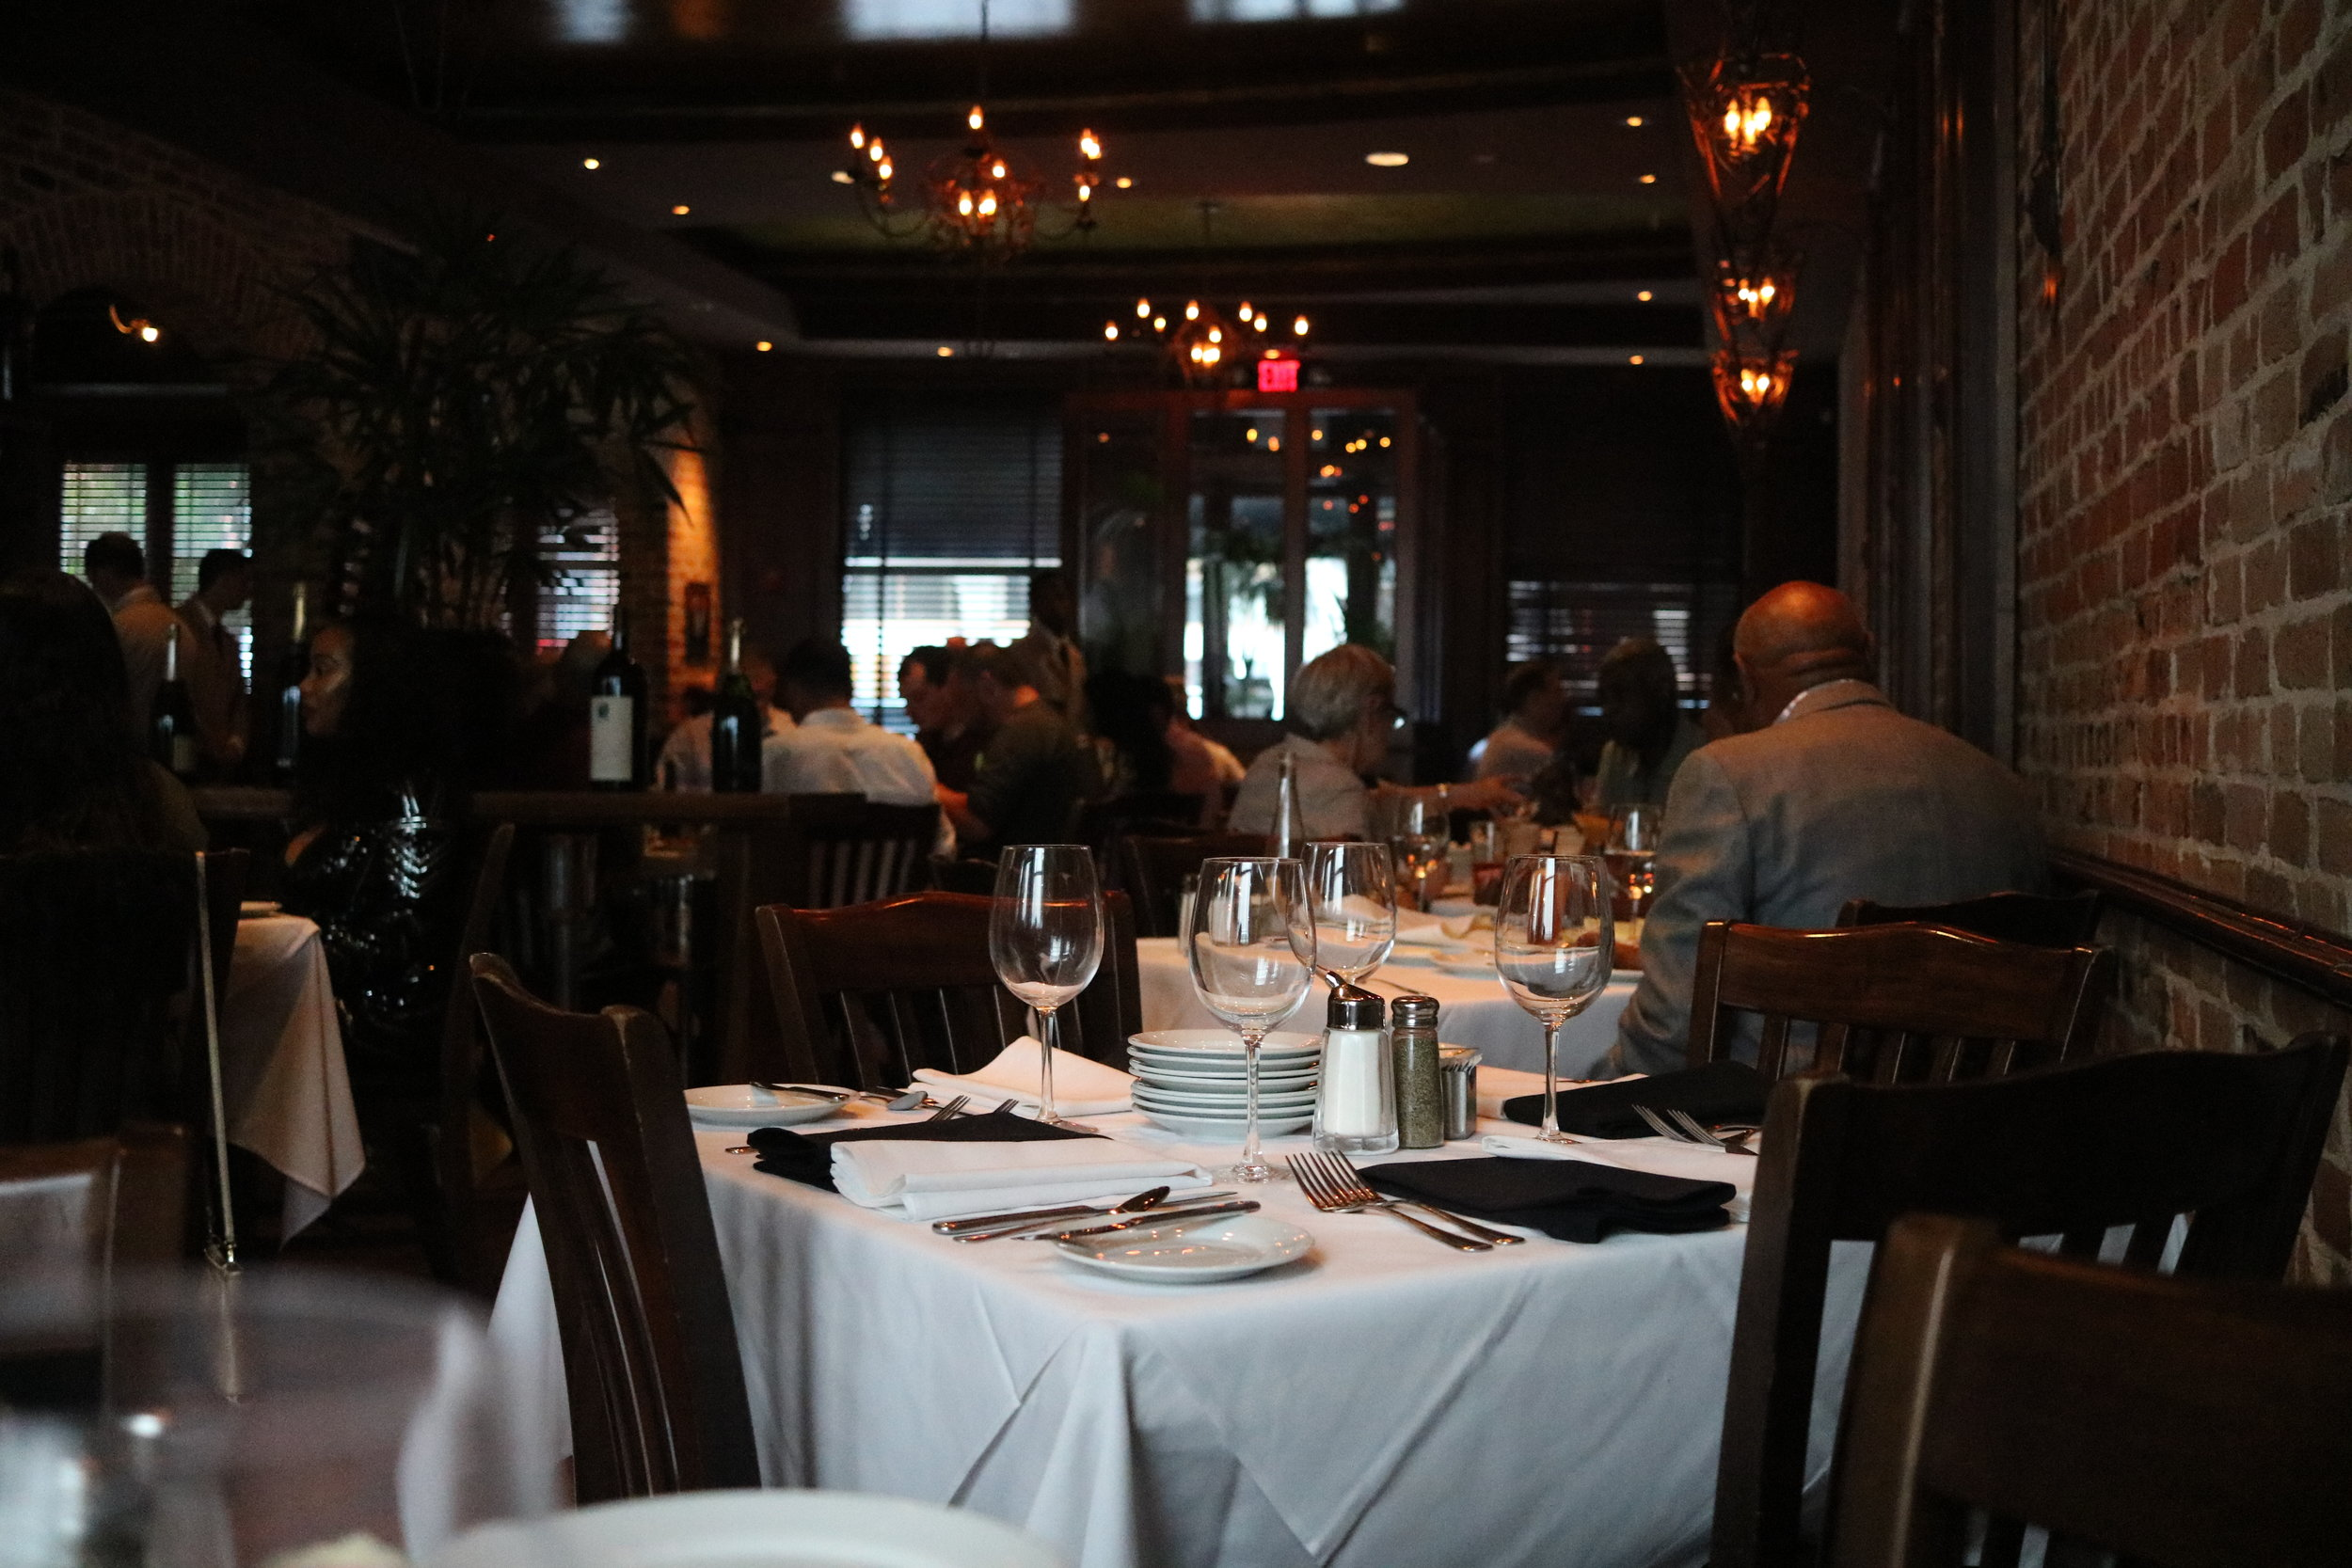 Inside Chophouse New Orleans. I asked for a table in the back corner. I wanted to take in the room.